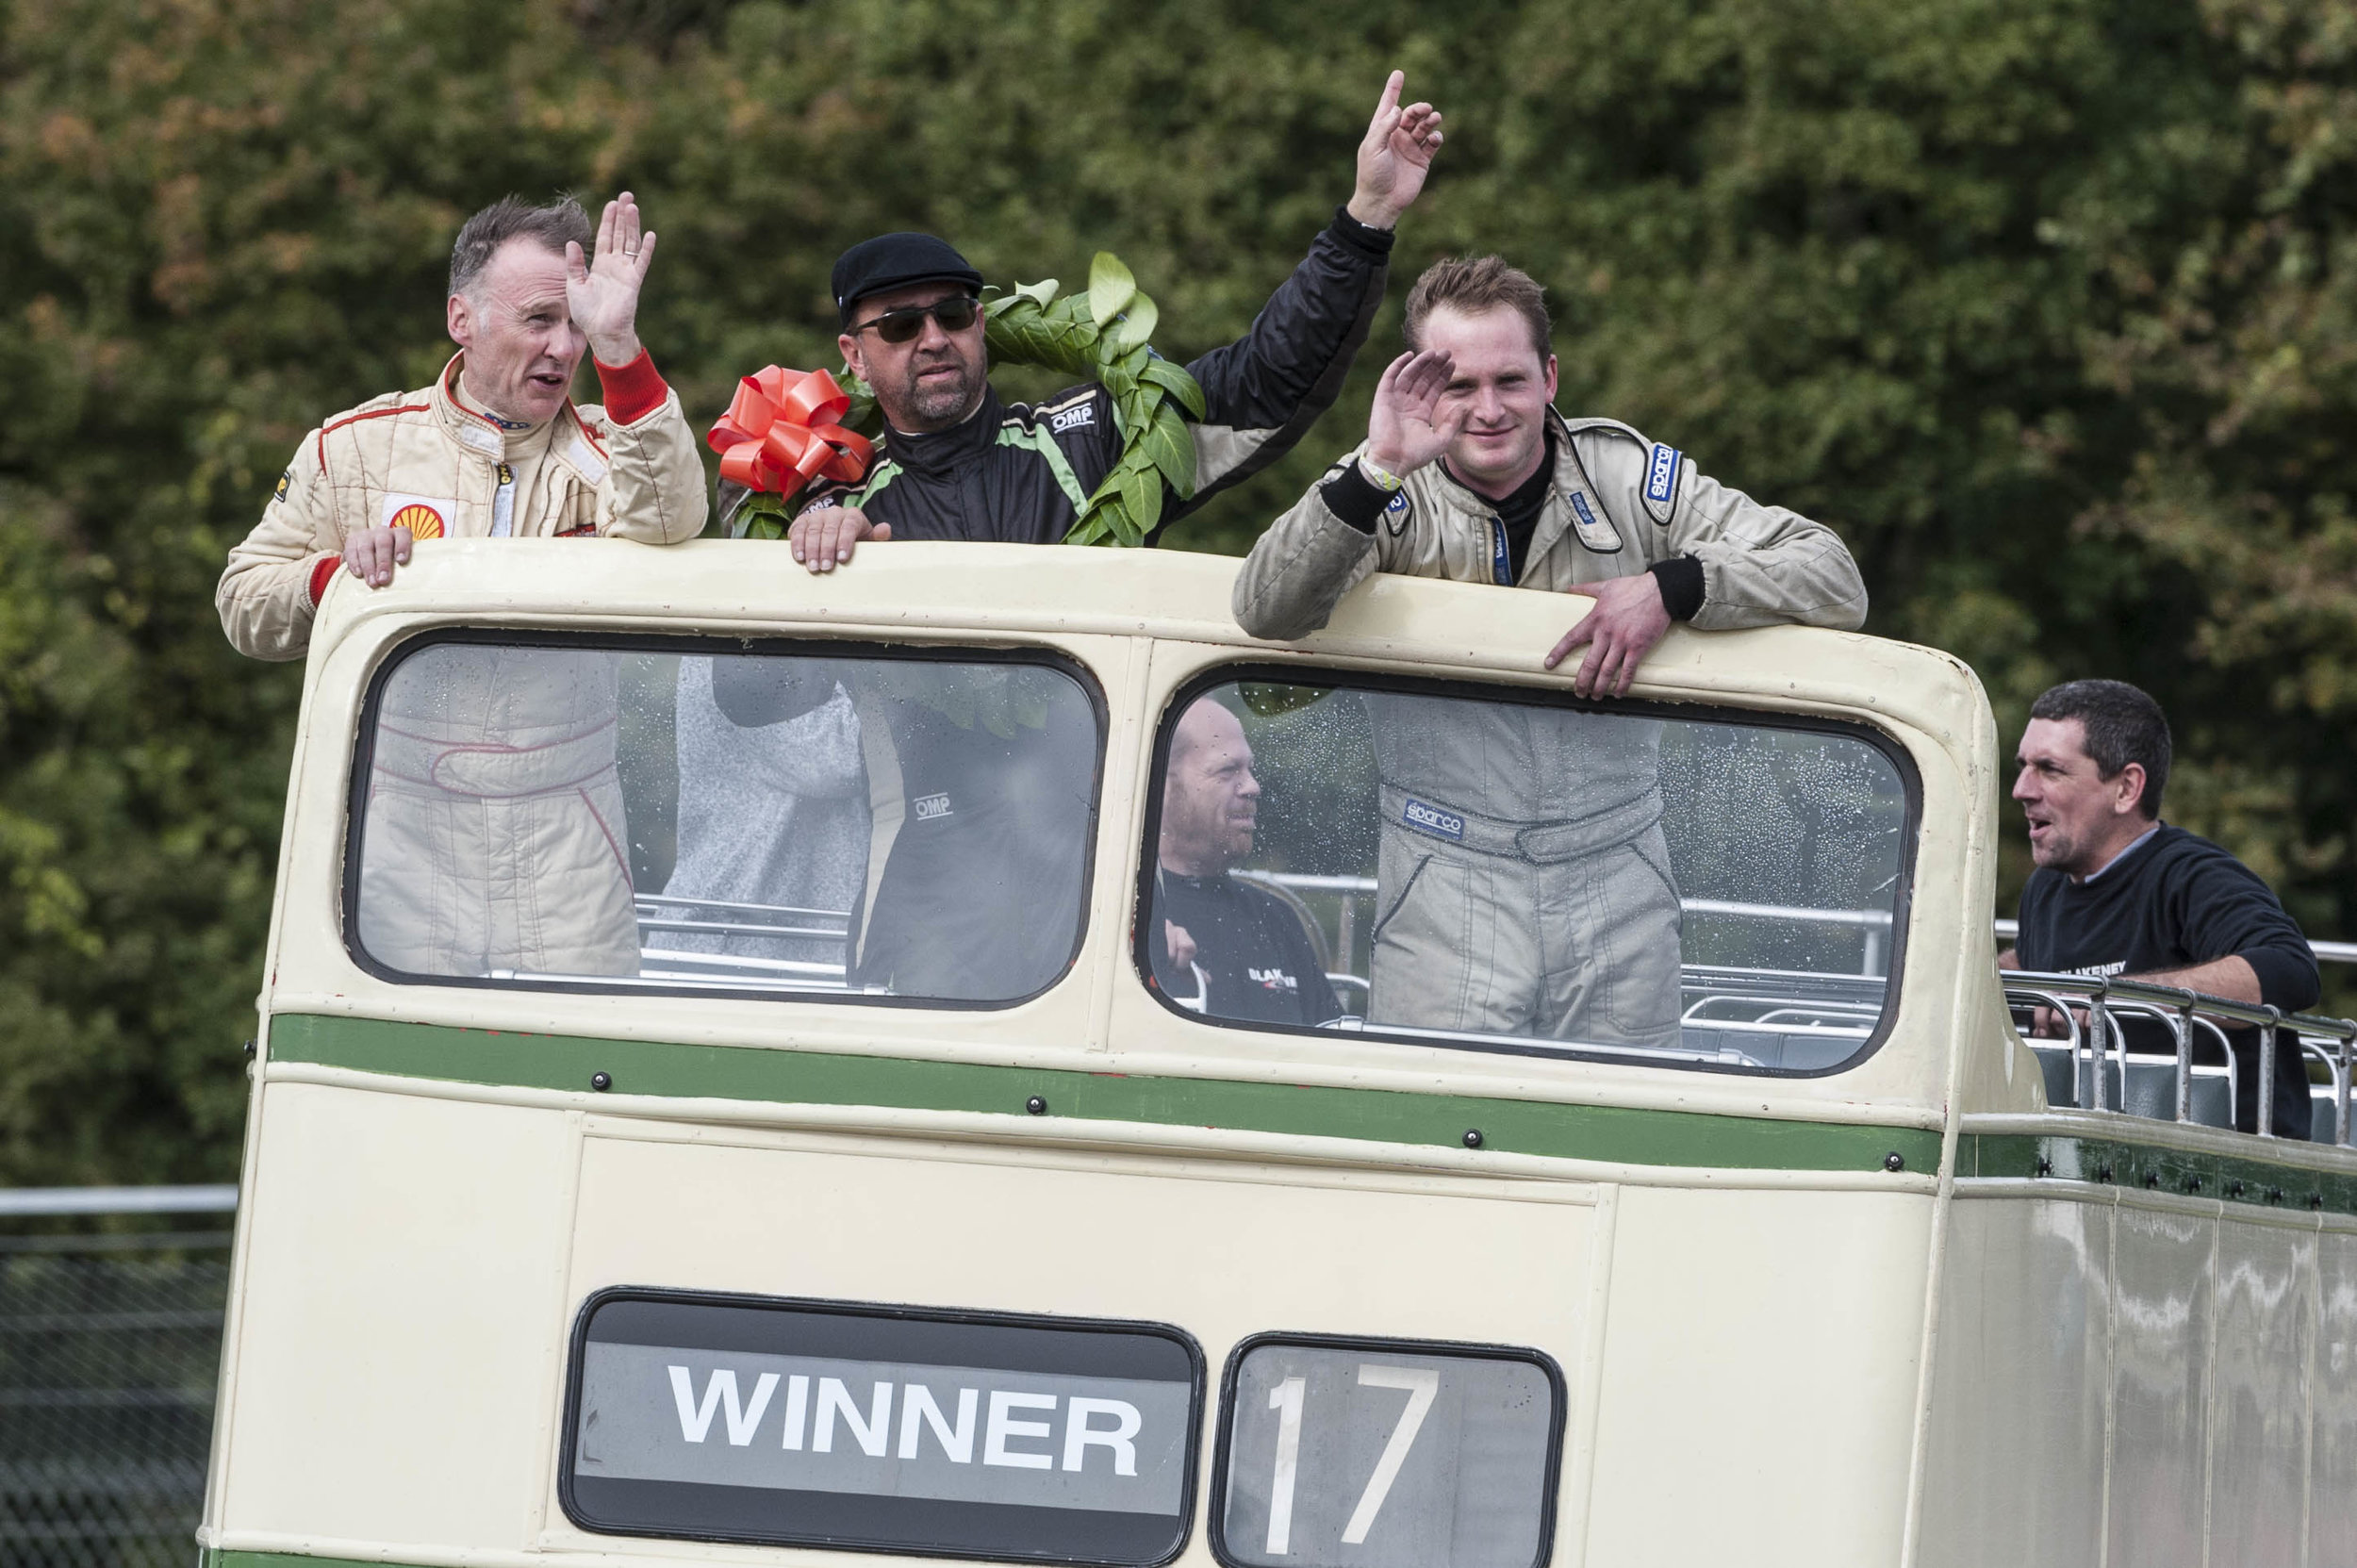 Gillies, Patrick BE and Williams in the victory bus - before Kneller was awarded 3rd place from Gillies:  Peter McFadyen